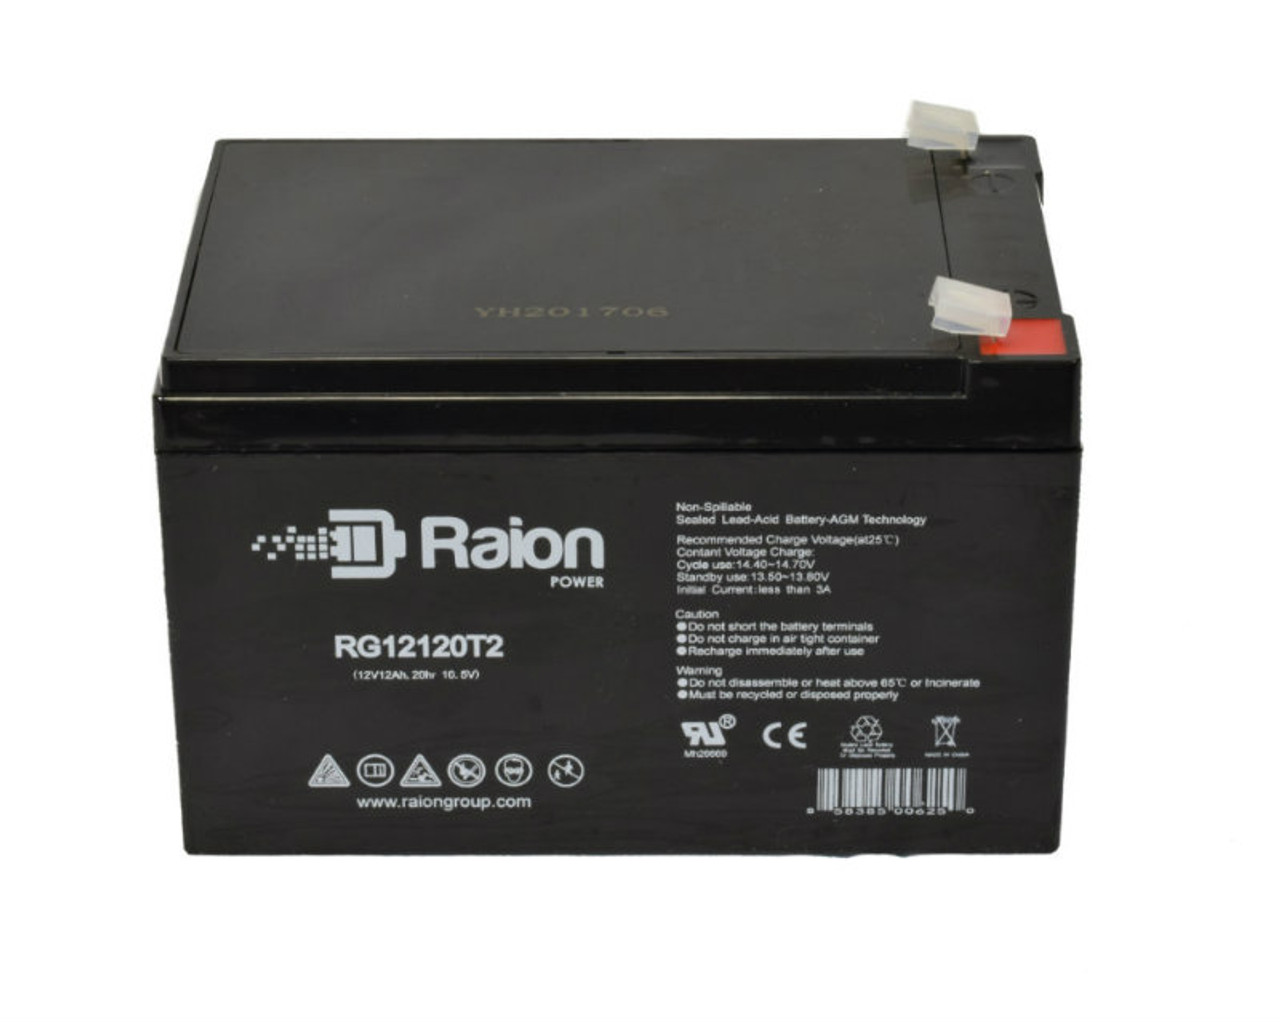 Raion Power RG12120T2 12V 12Ah Battery for Ademco 25360 Fire Alarm Control Panel